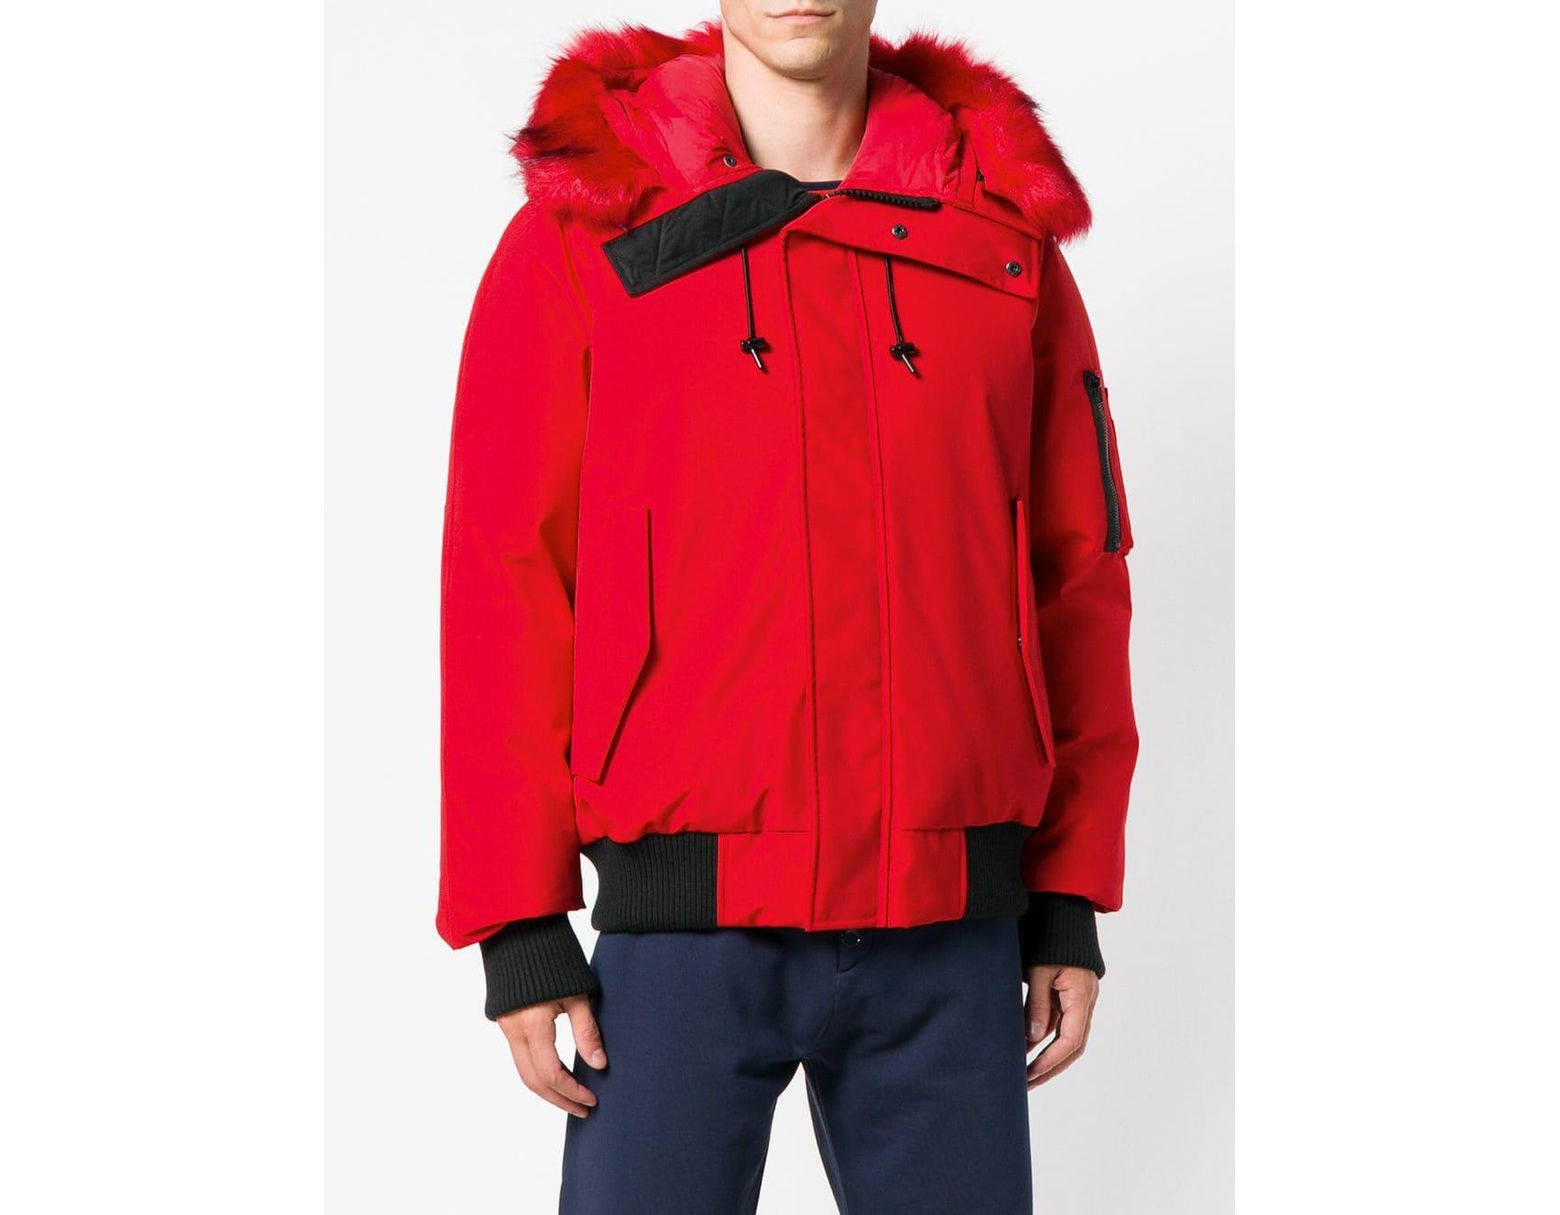 600a4b91a Men's Red Faux Fur Trimmed Puffer Jacket